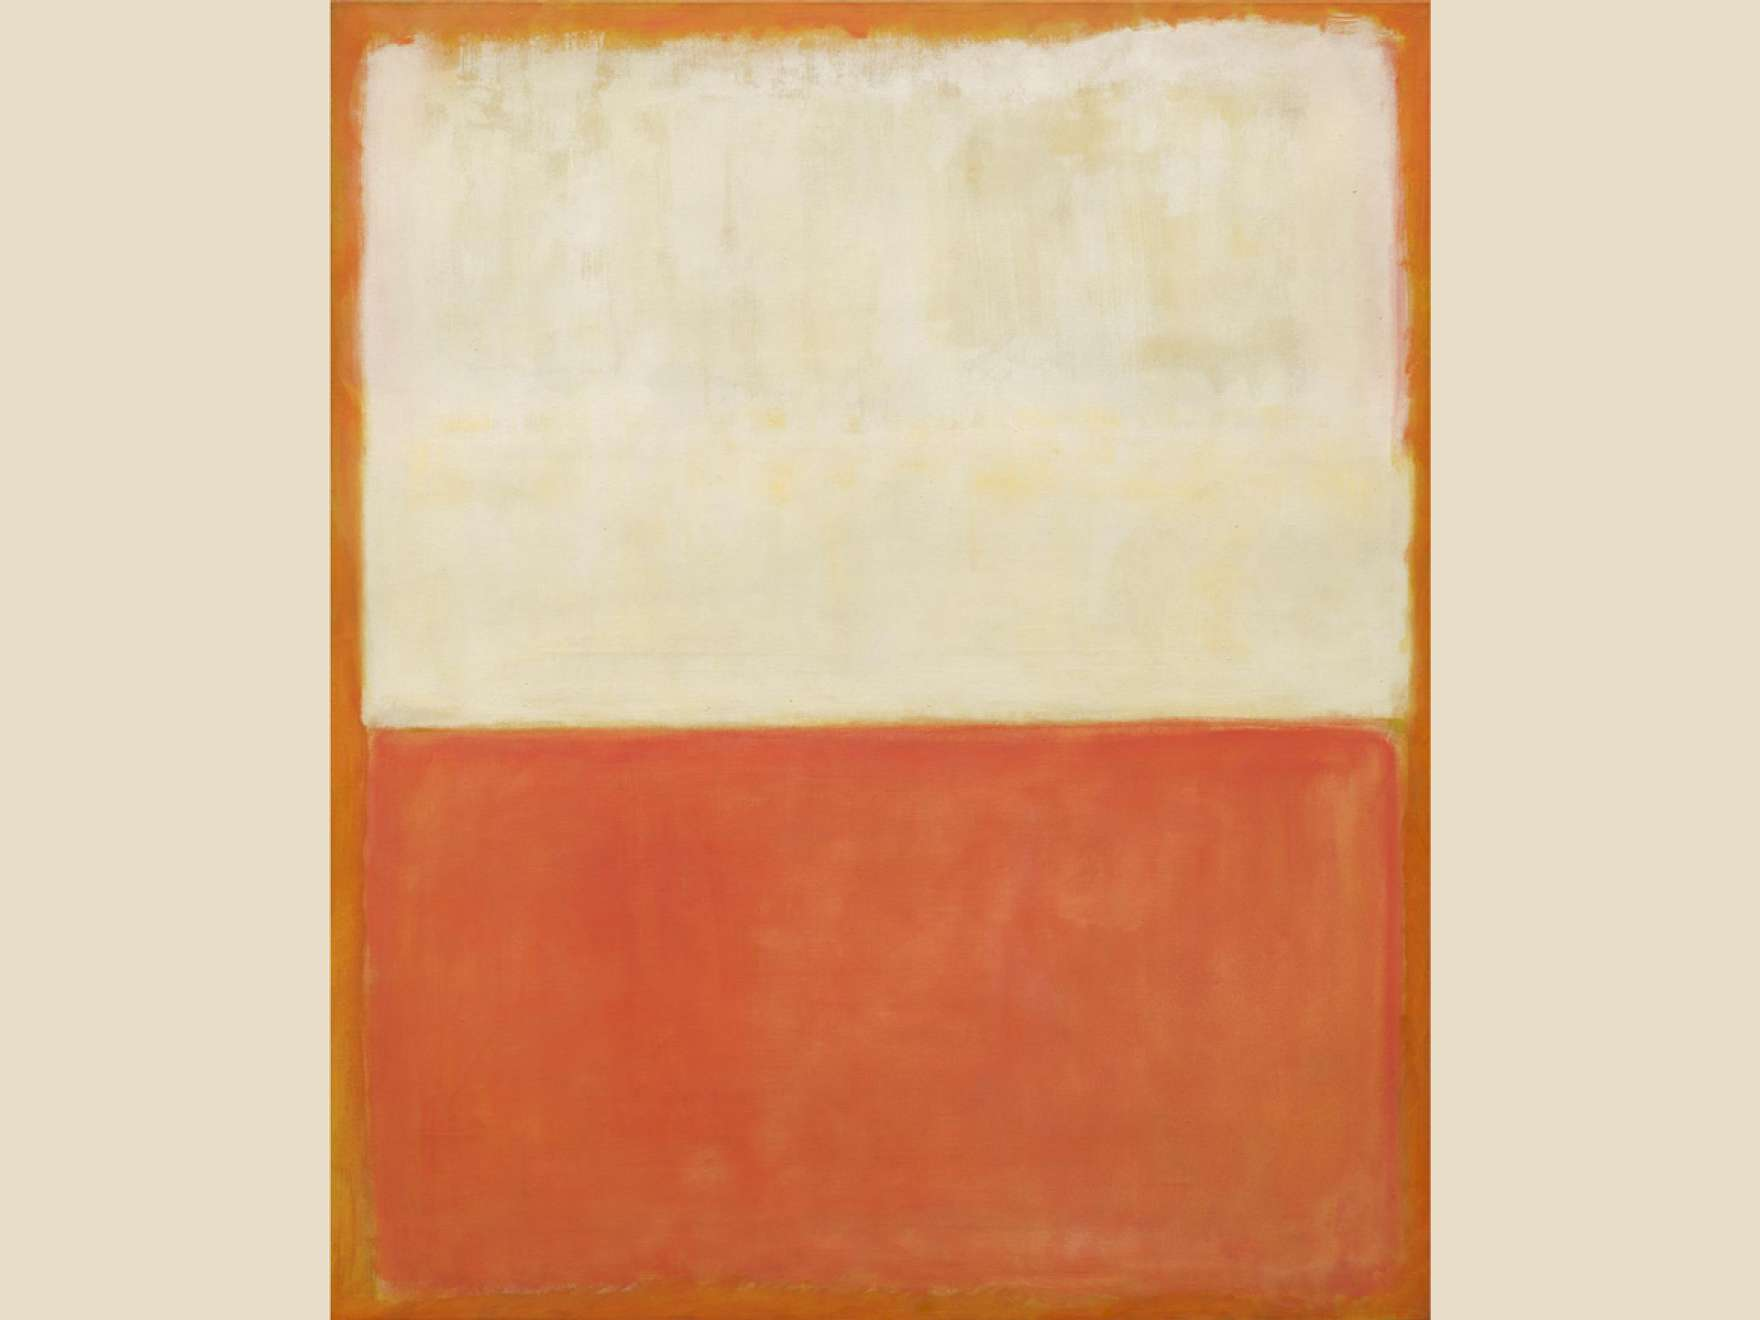 Mark Rothko's 1955 painting, Untitled